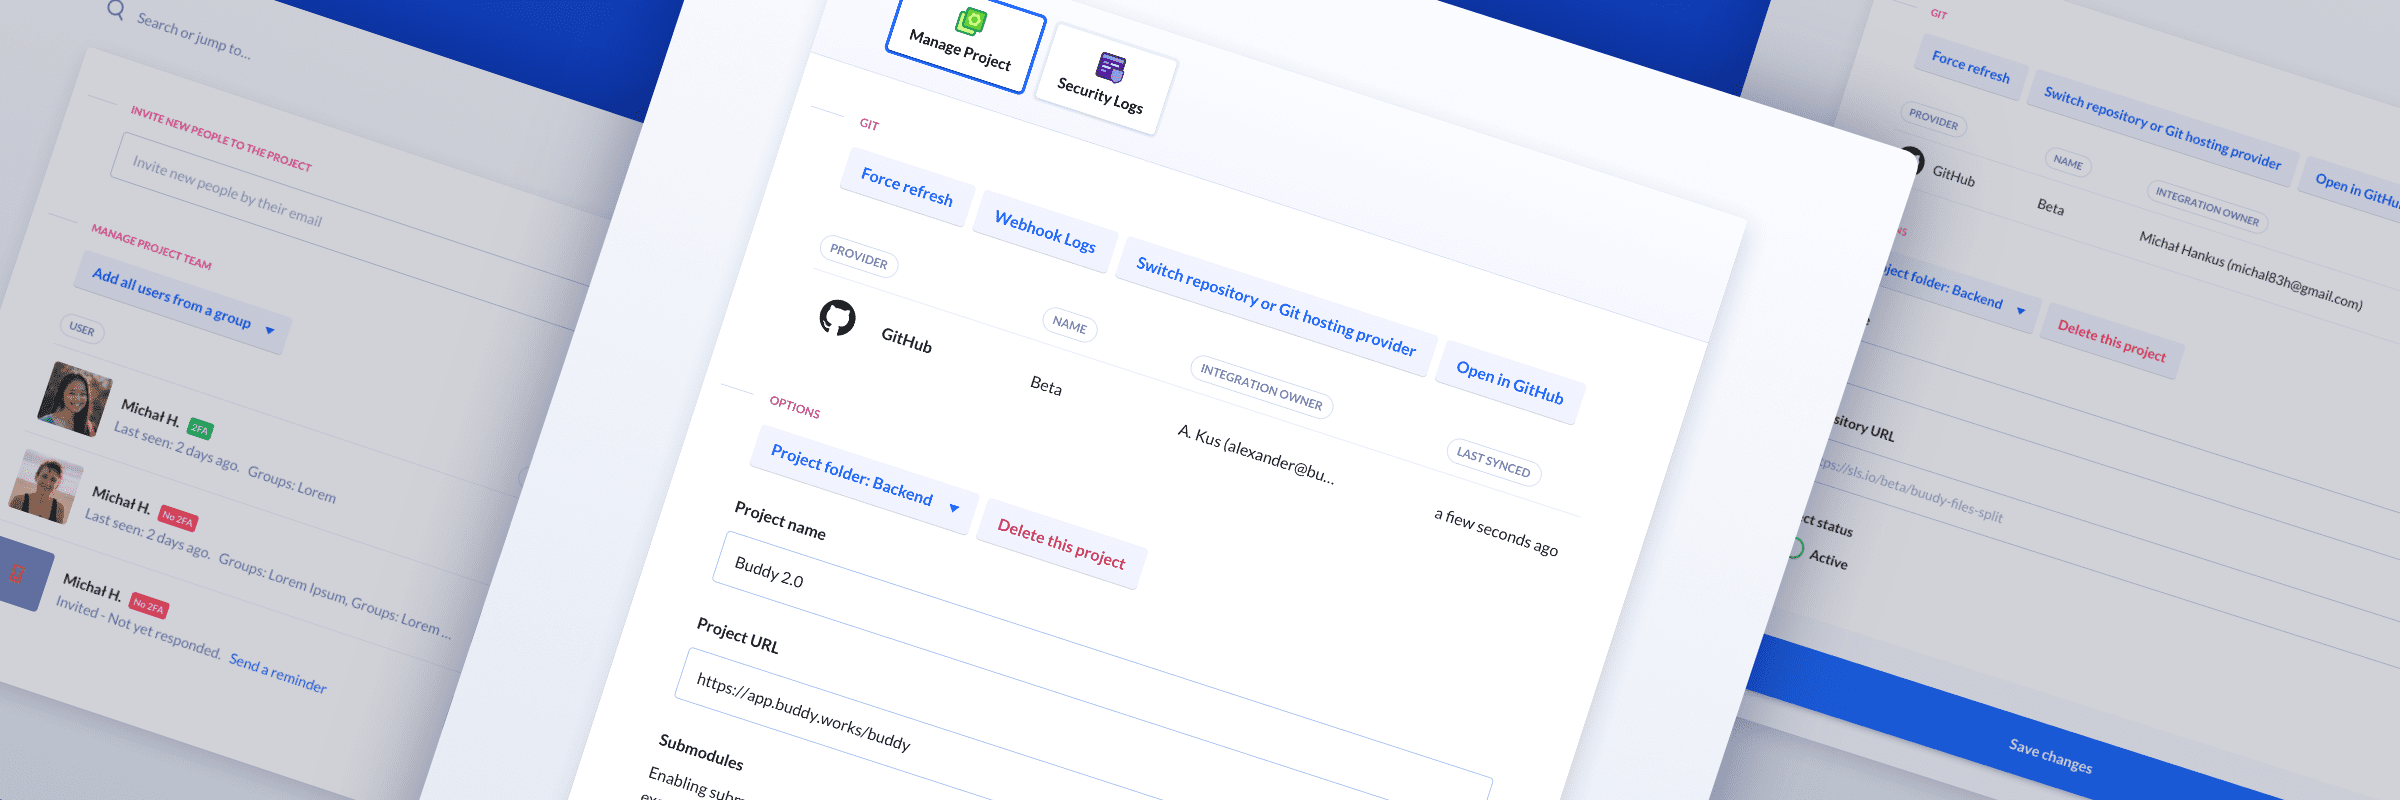 Buddy v2.0: New Project Settings & Teams views